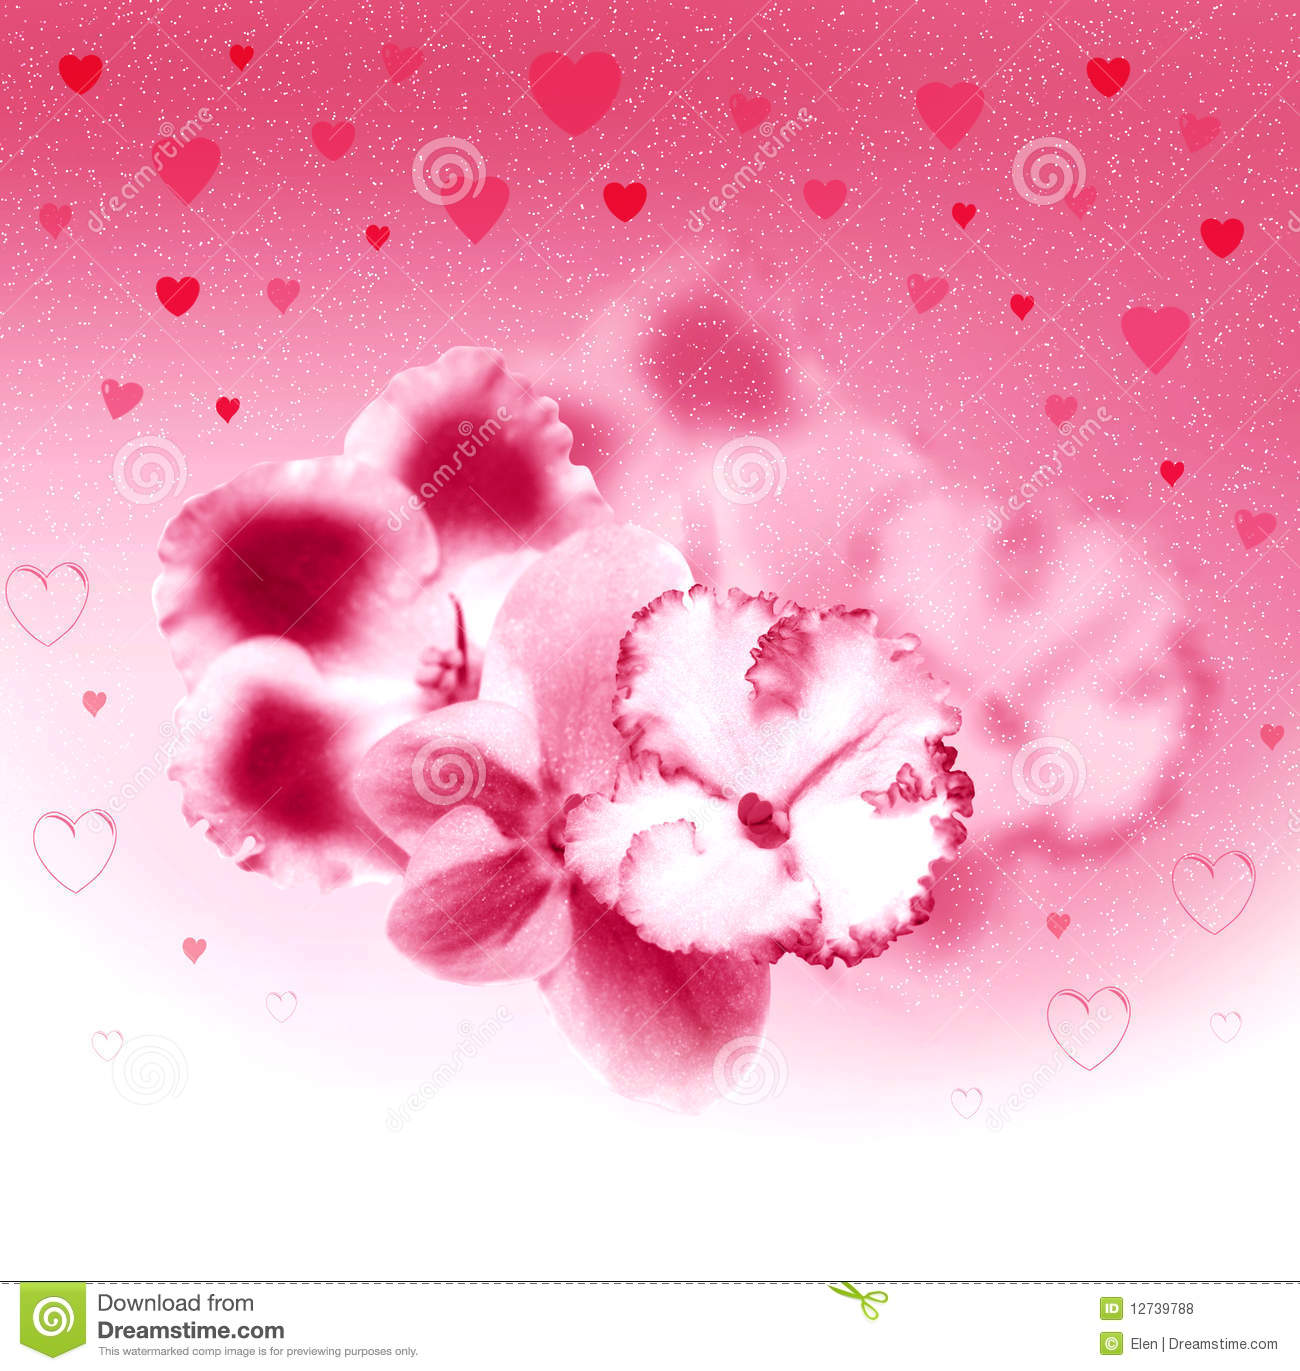 Beautiful flowers and hearts stock illustration illustration of beautiful flowers and hearts izmirmasajfo Choice Image